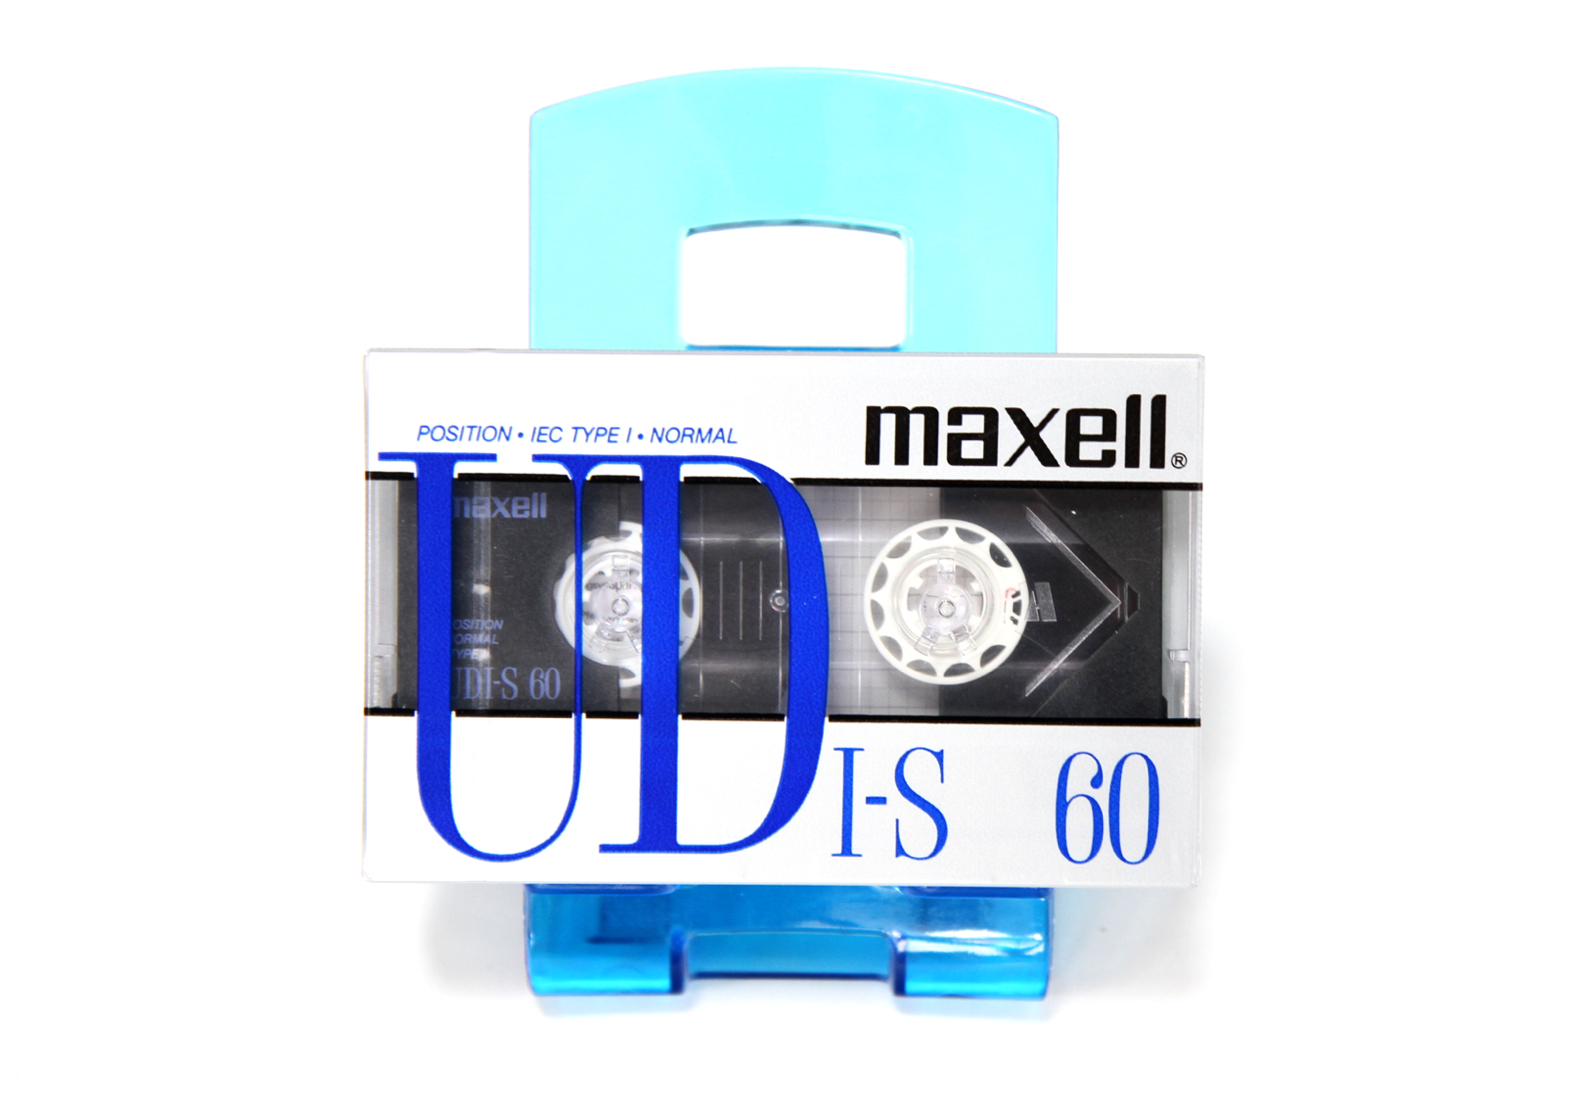 MAXELL UDI-S60 Position Normal